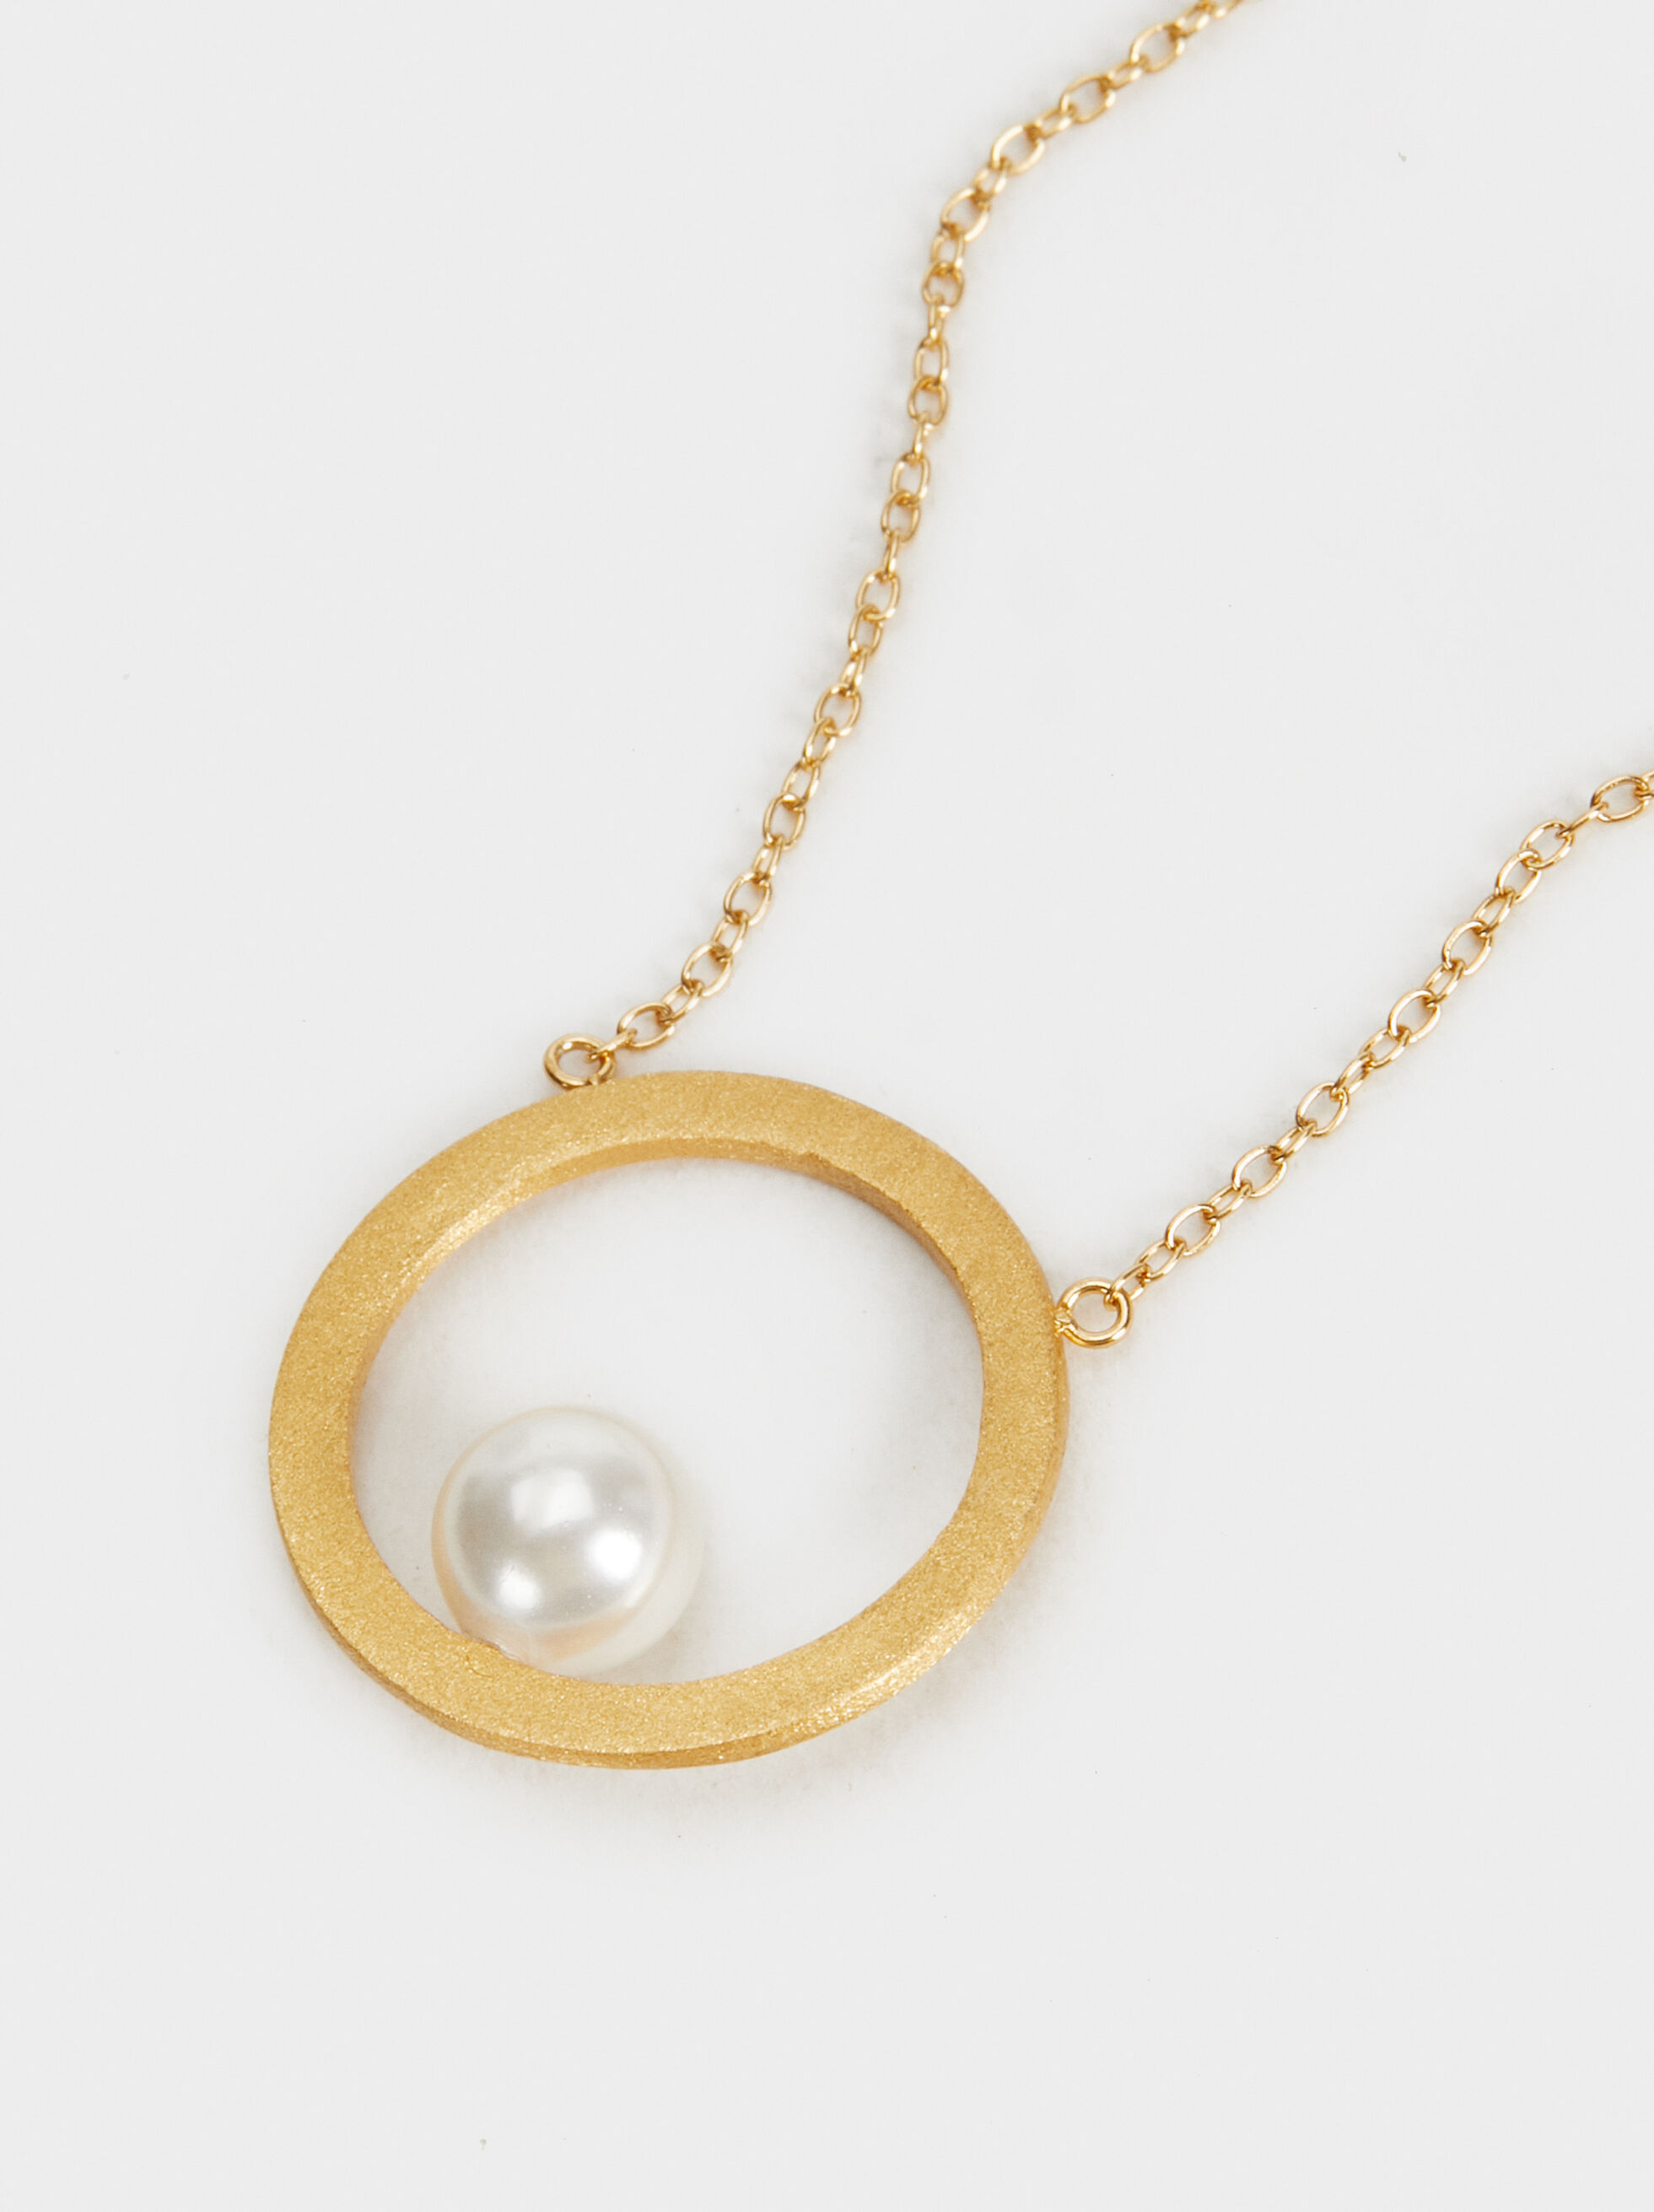 Silver 925 Necklace With Faux Pearls, Beige, hi-res